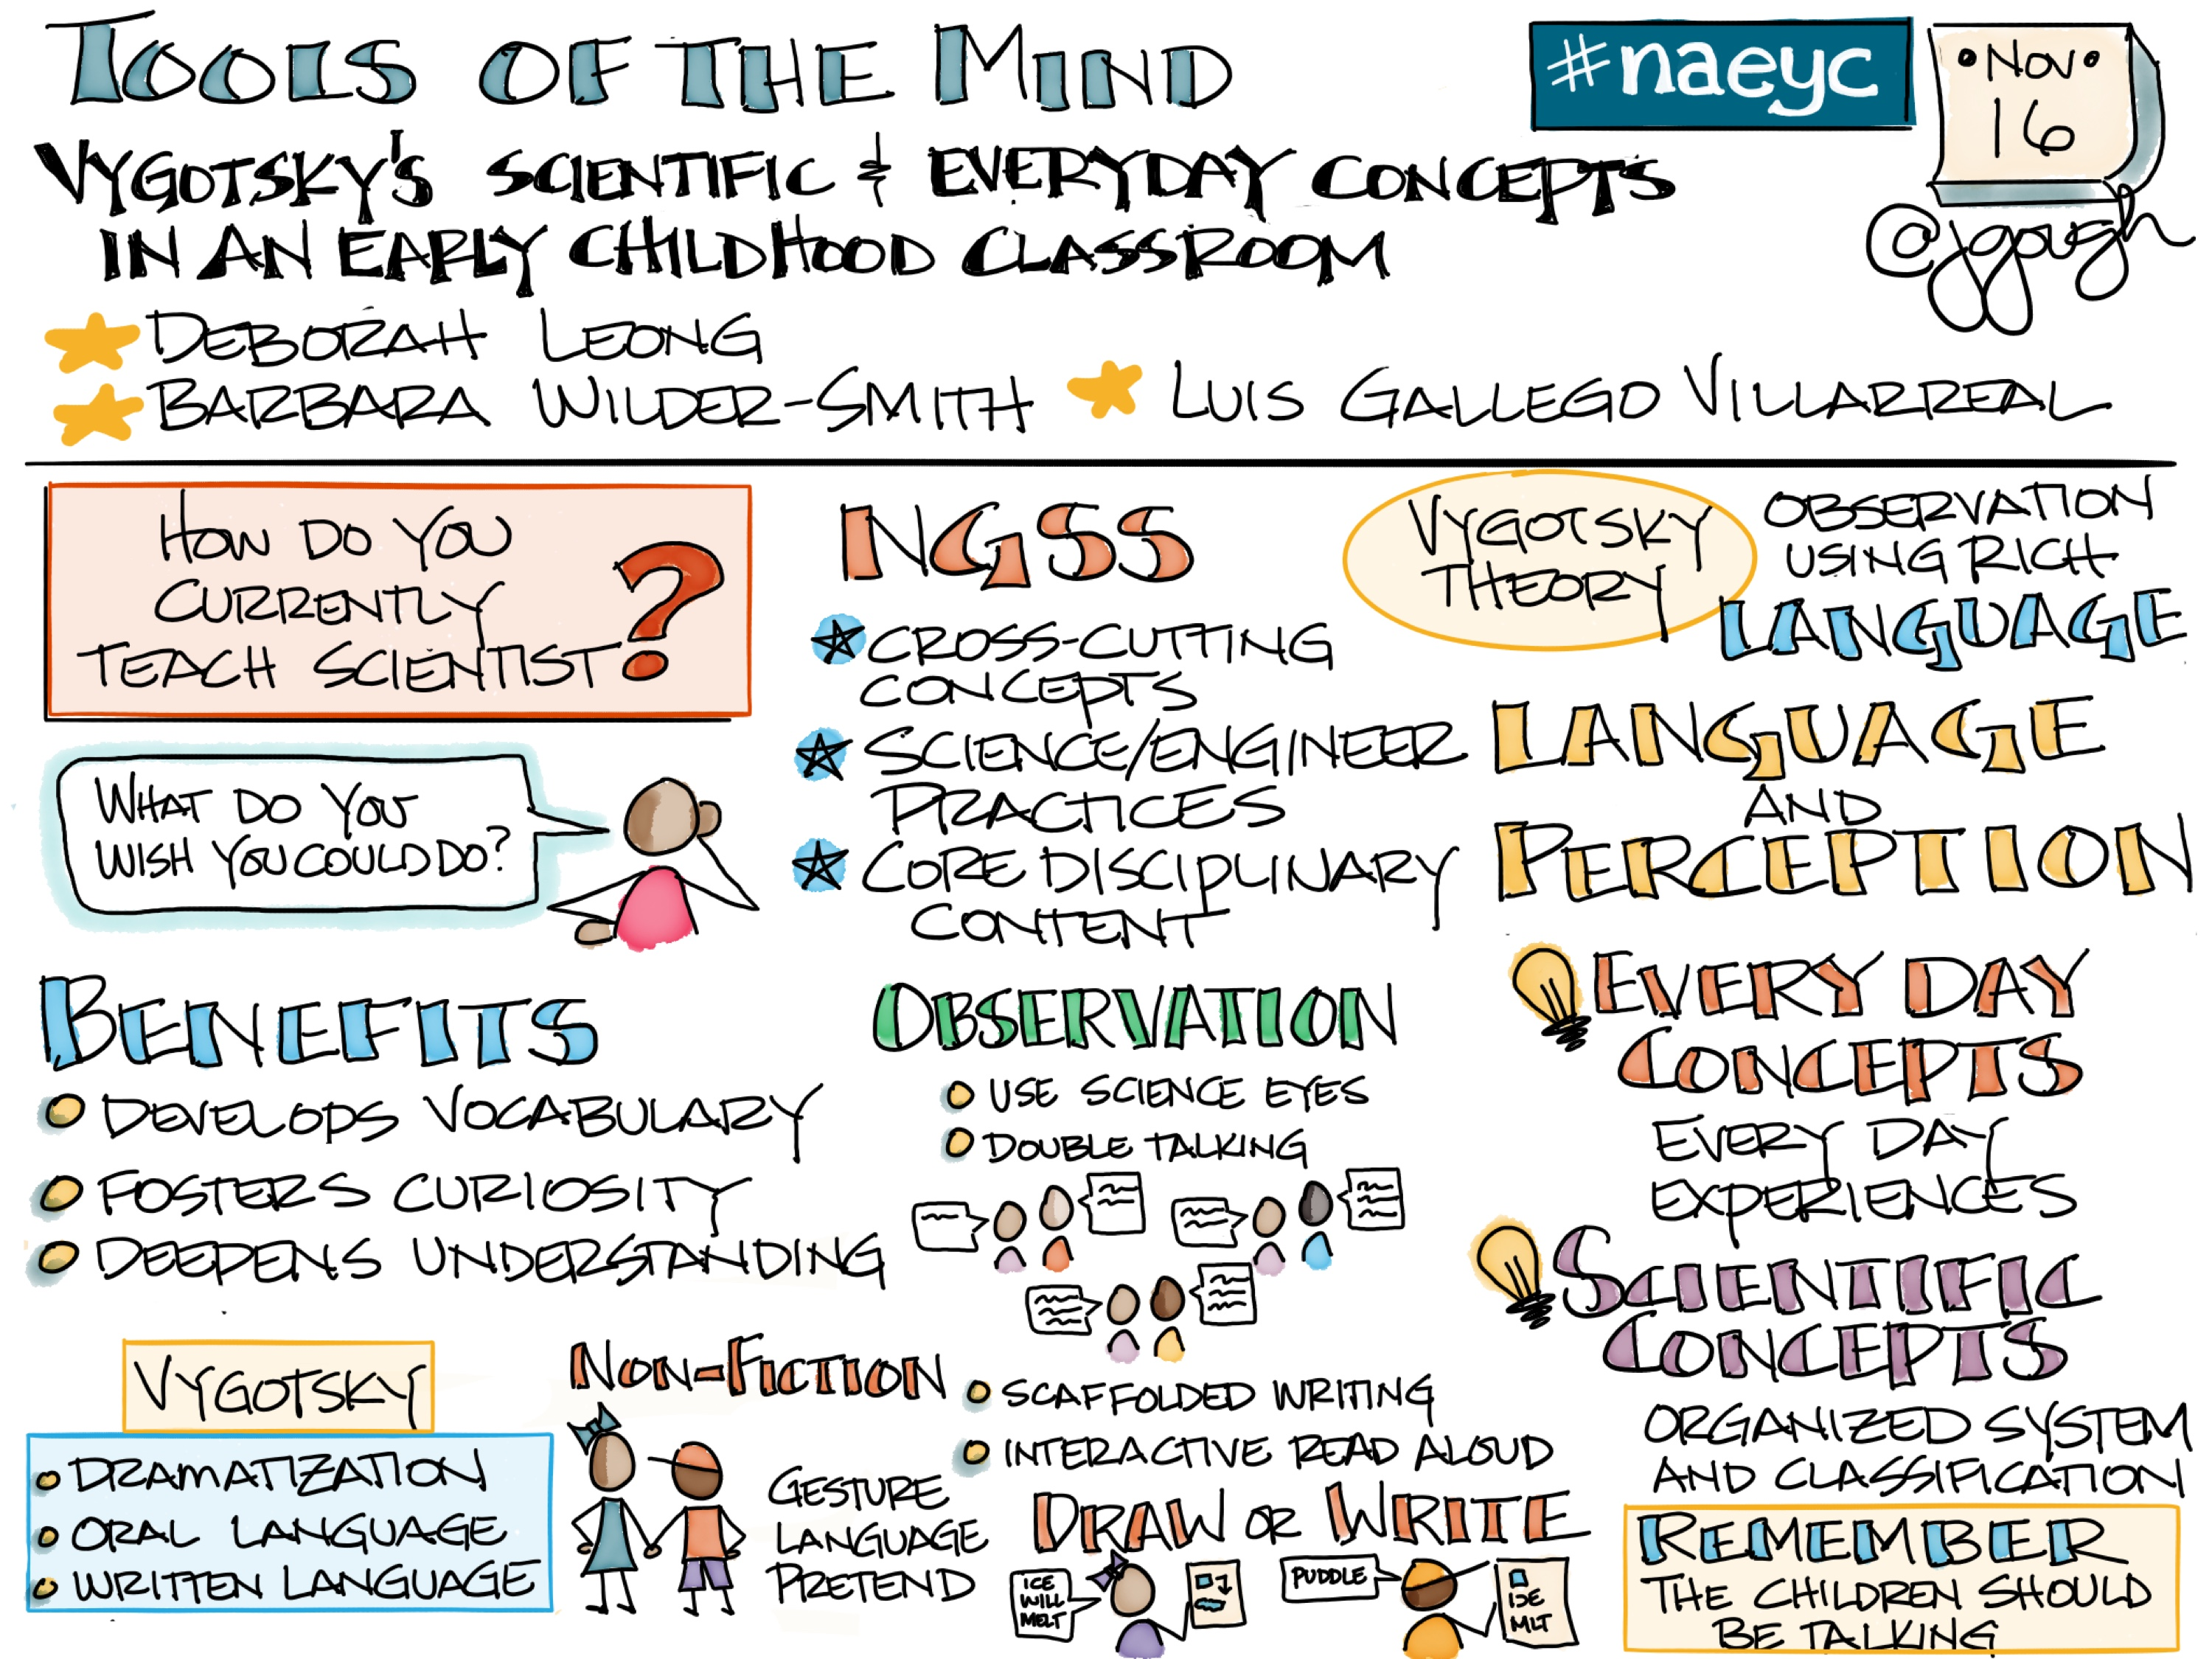 #NAEYC: Tools of the Mind with Deborah Leong, Barbara Wilder, Luis Gallegos Villarreal